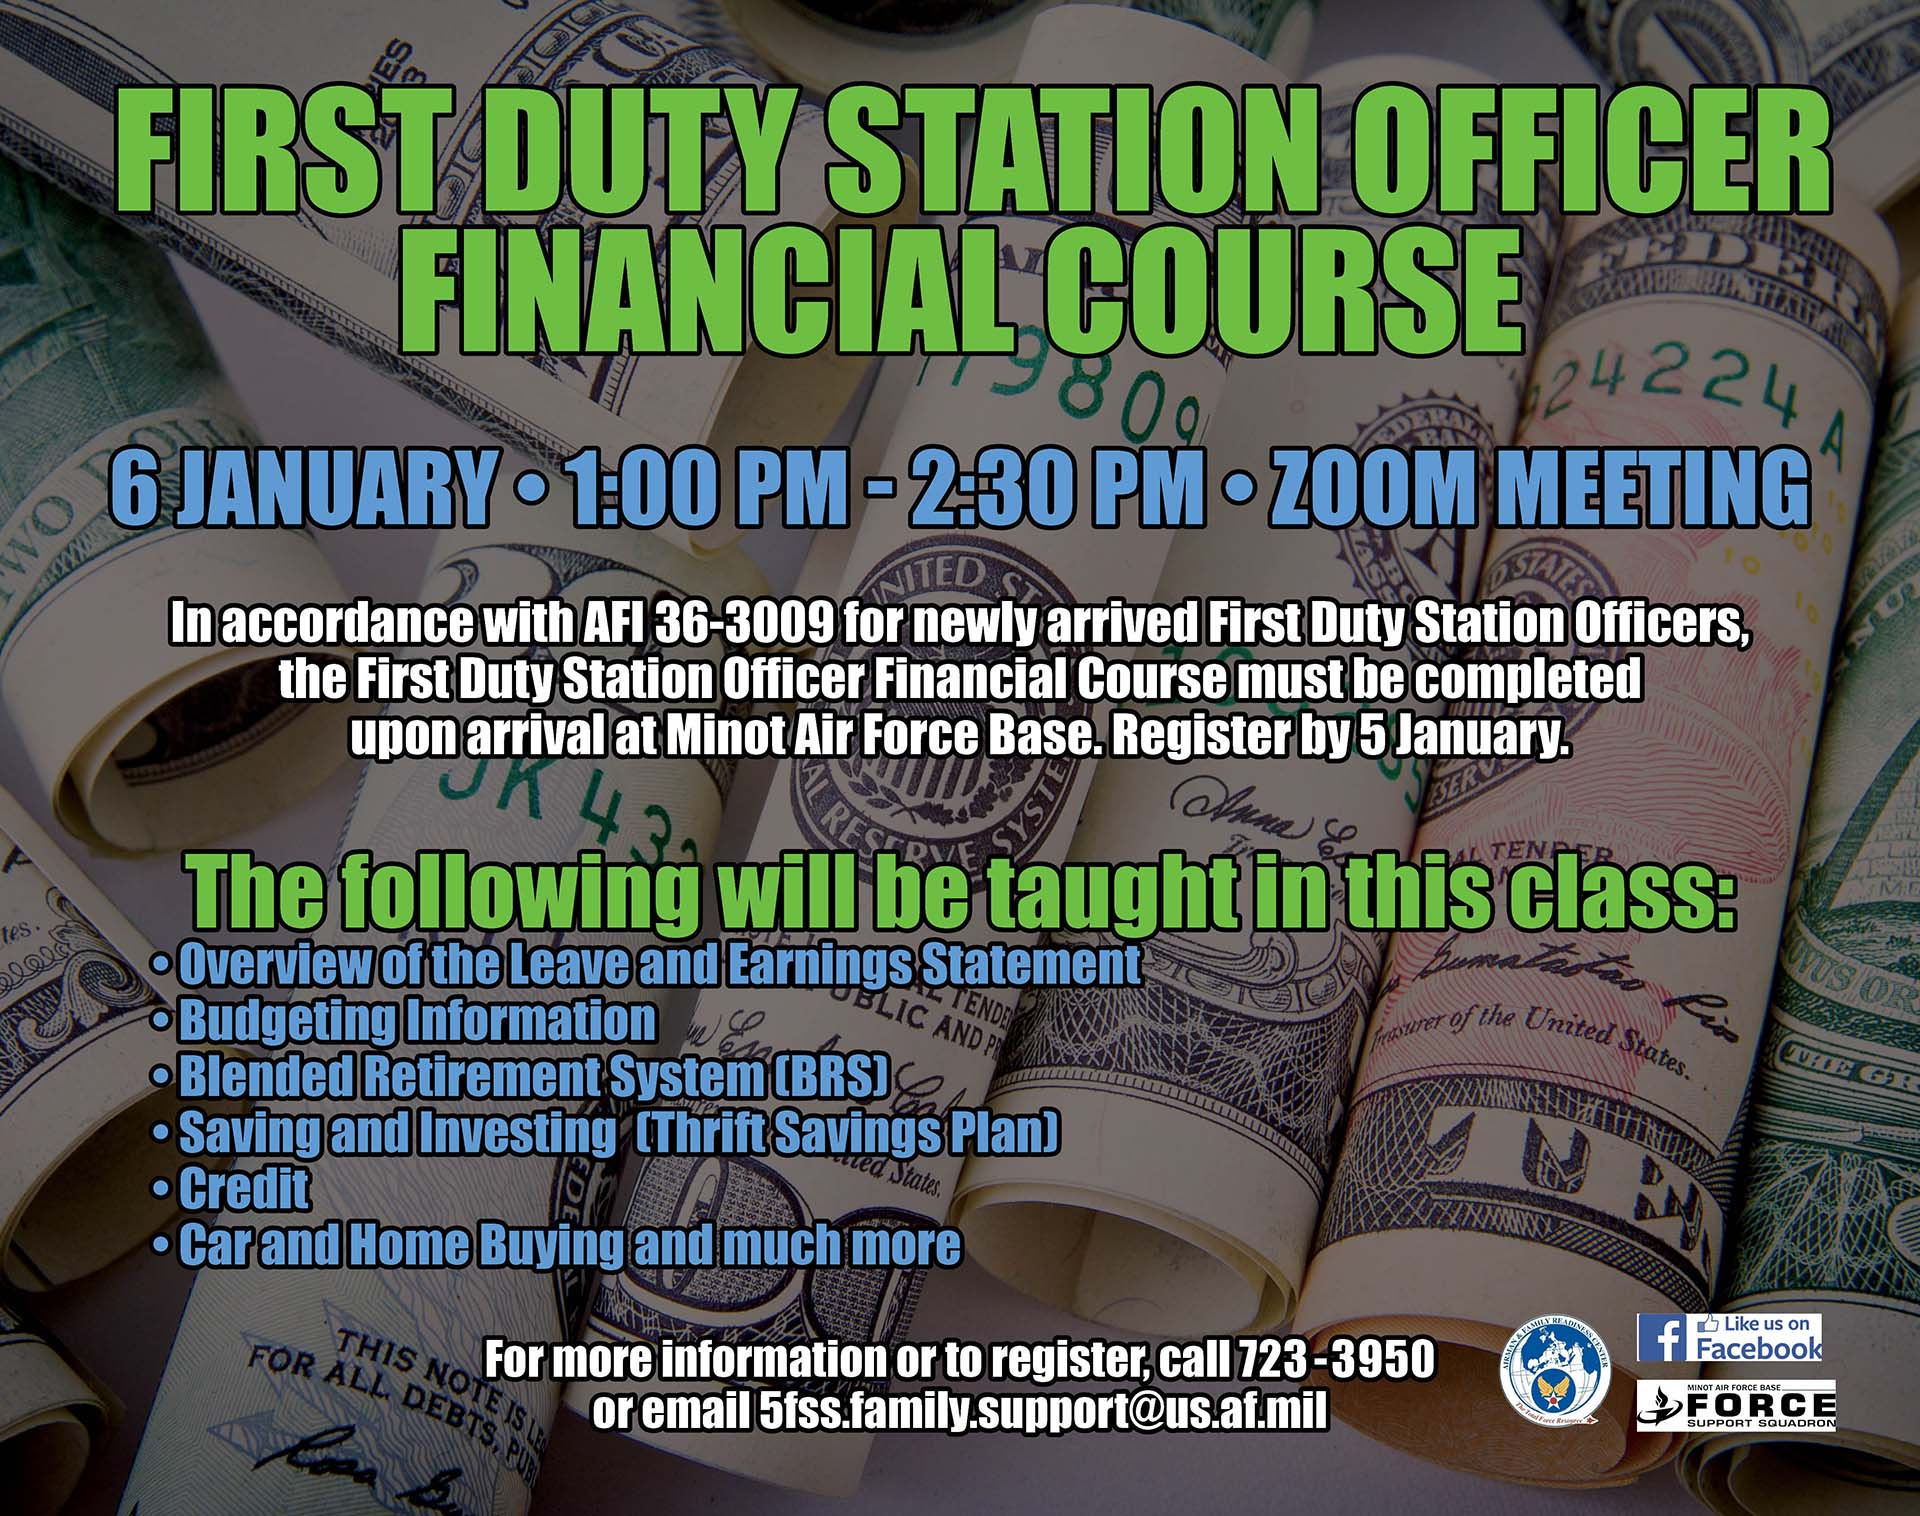 First Duty Station Officer Financial Course - ONLINE